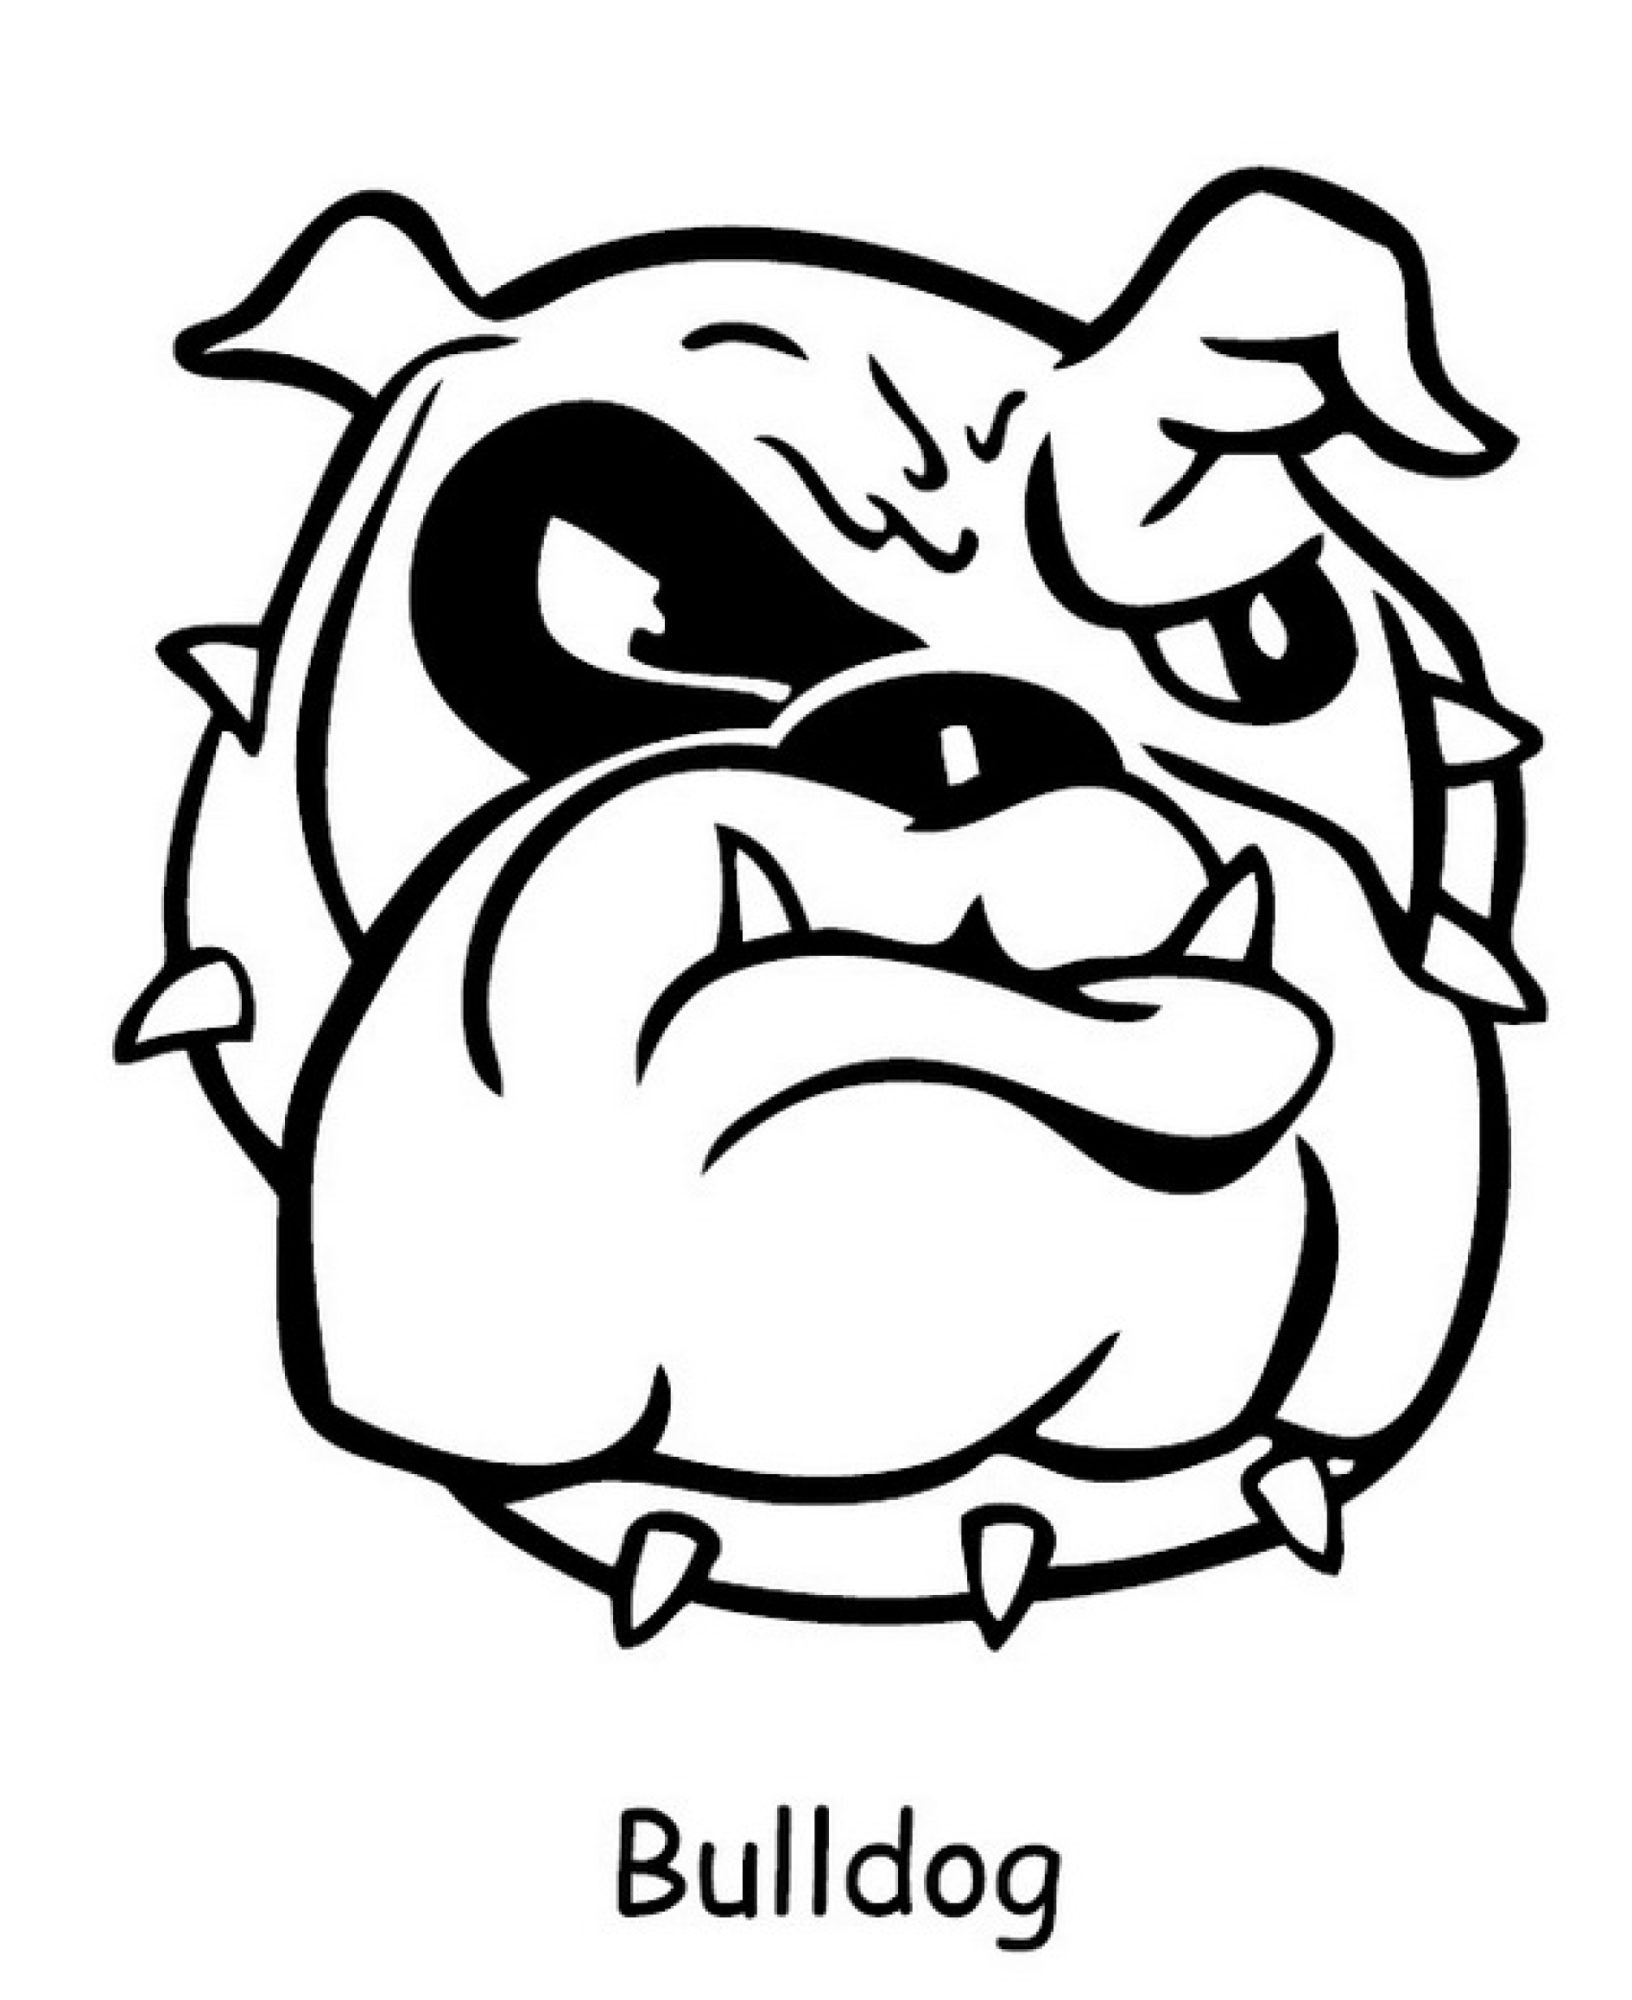 Cute Bulldog Cartoon Drawing Sketch Coloring Page Sketch Coloring